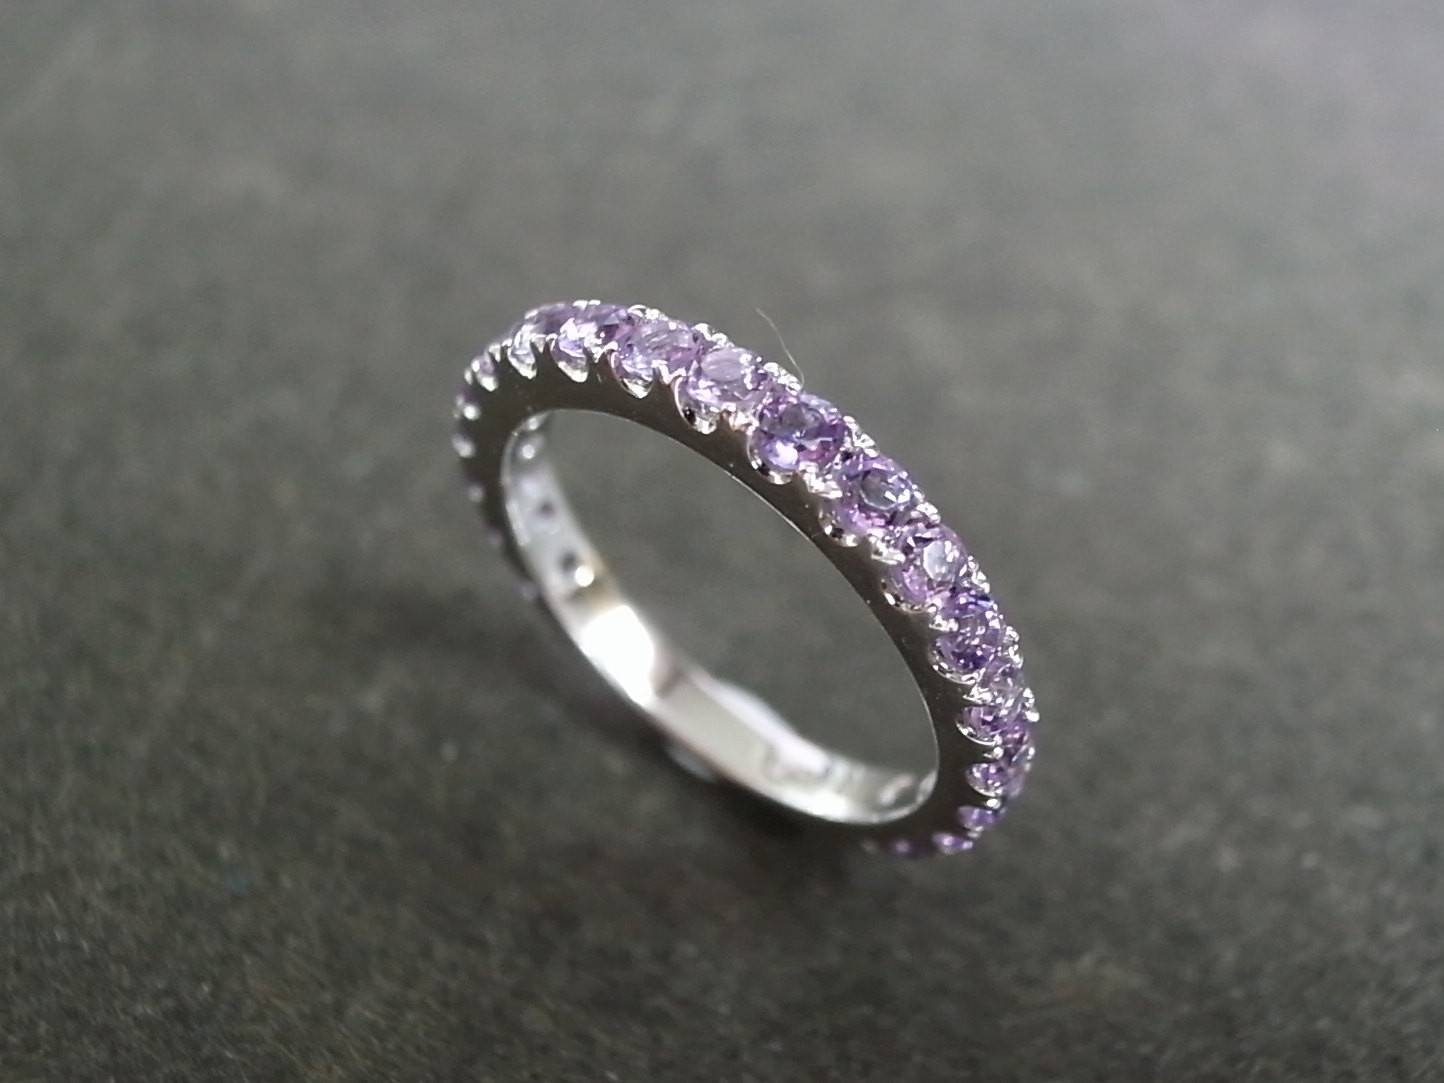 33 Most Wanted Stunning Amethyst Wedding Rings | Eternity Jewelry Inside Wedding Rings With Amethyst (View 11 of 15)